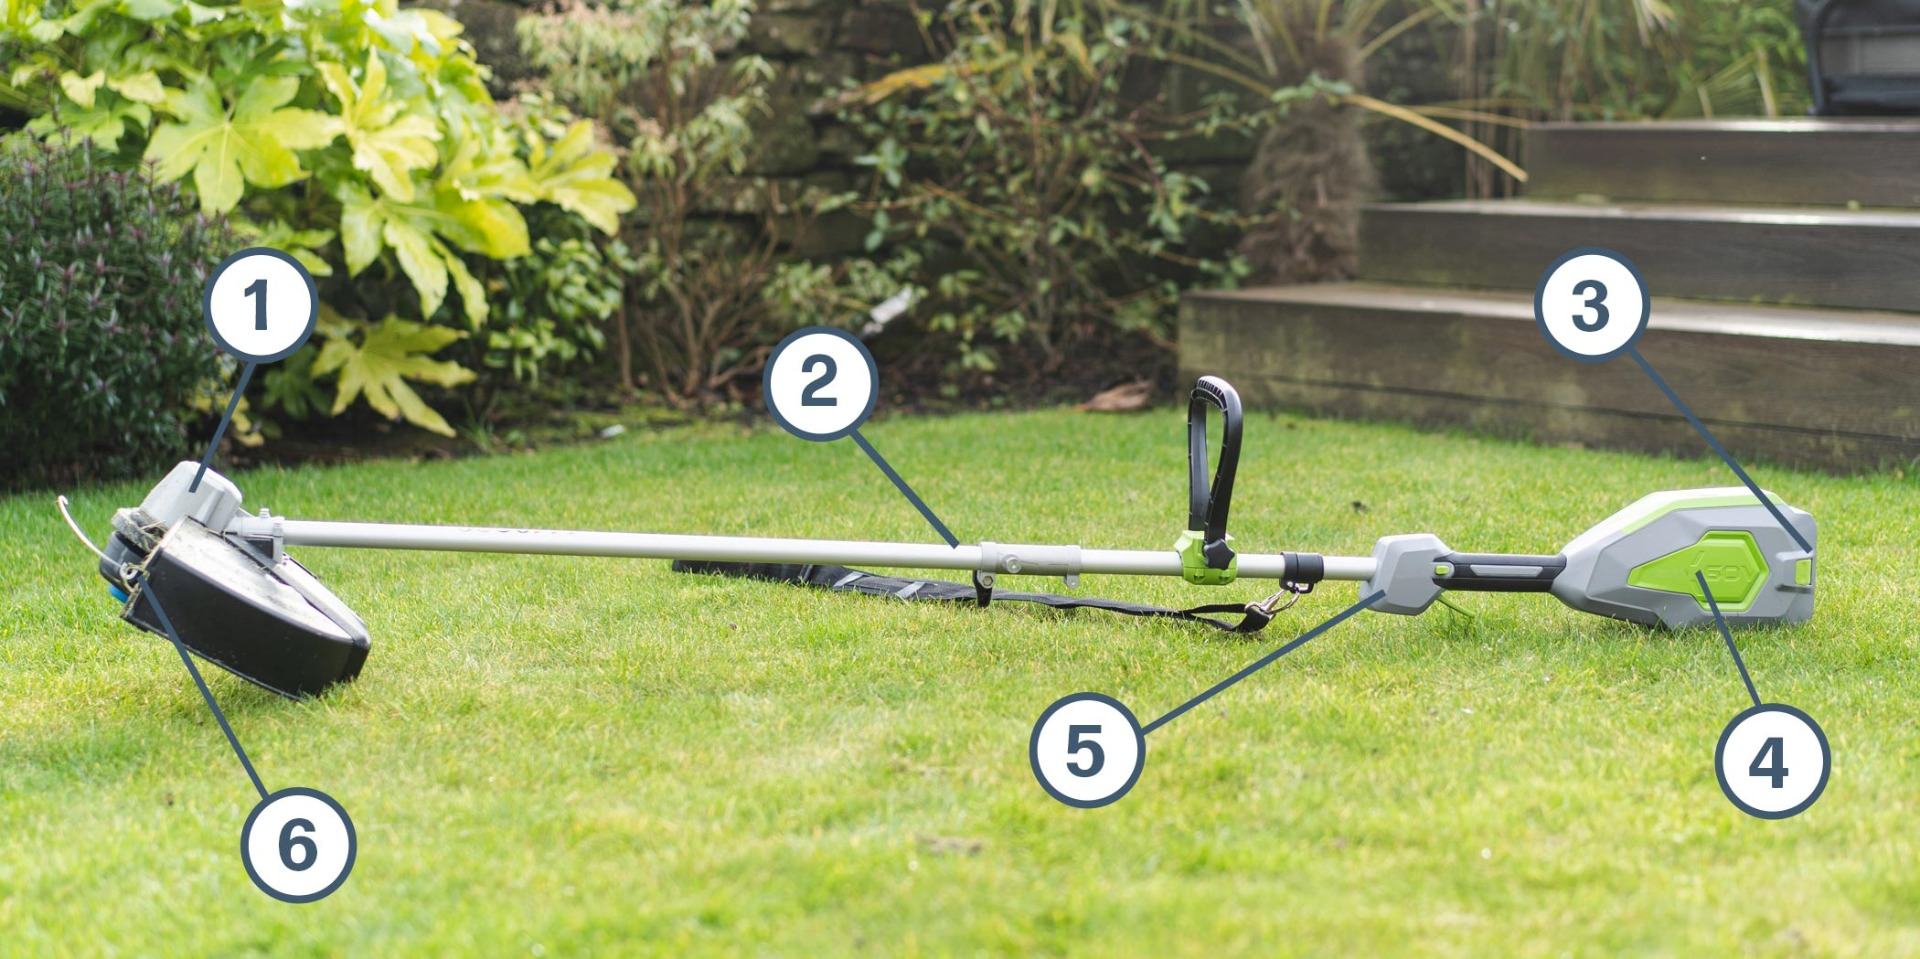 WARRIOR String Trimmer - Parts of the unit